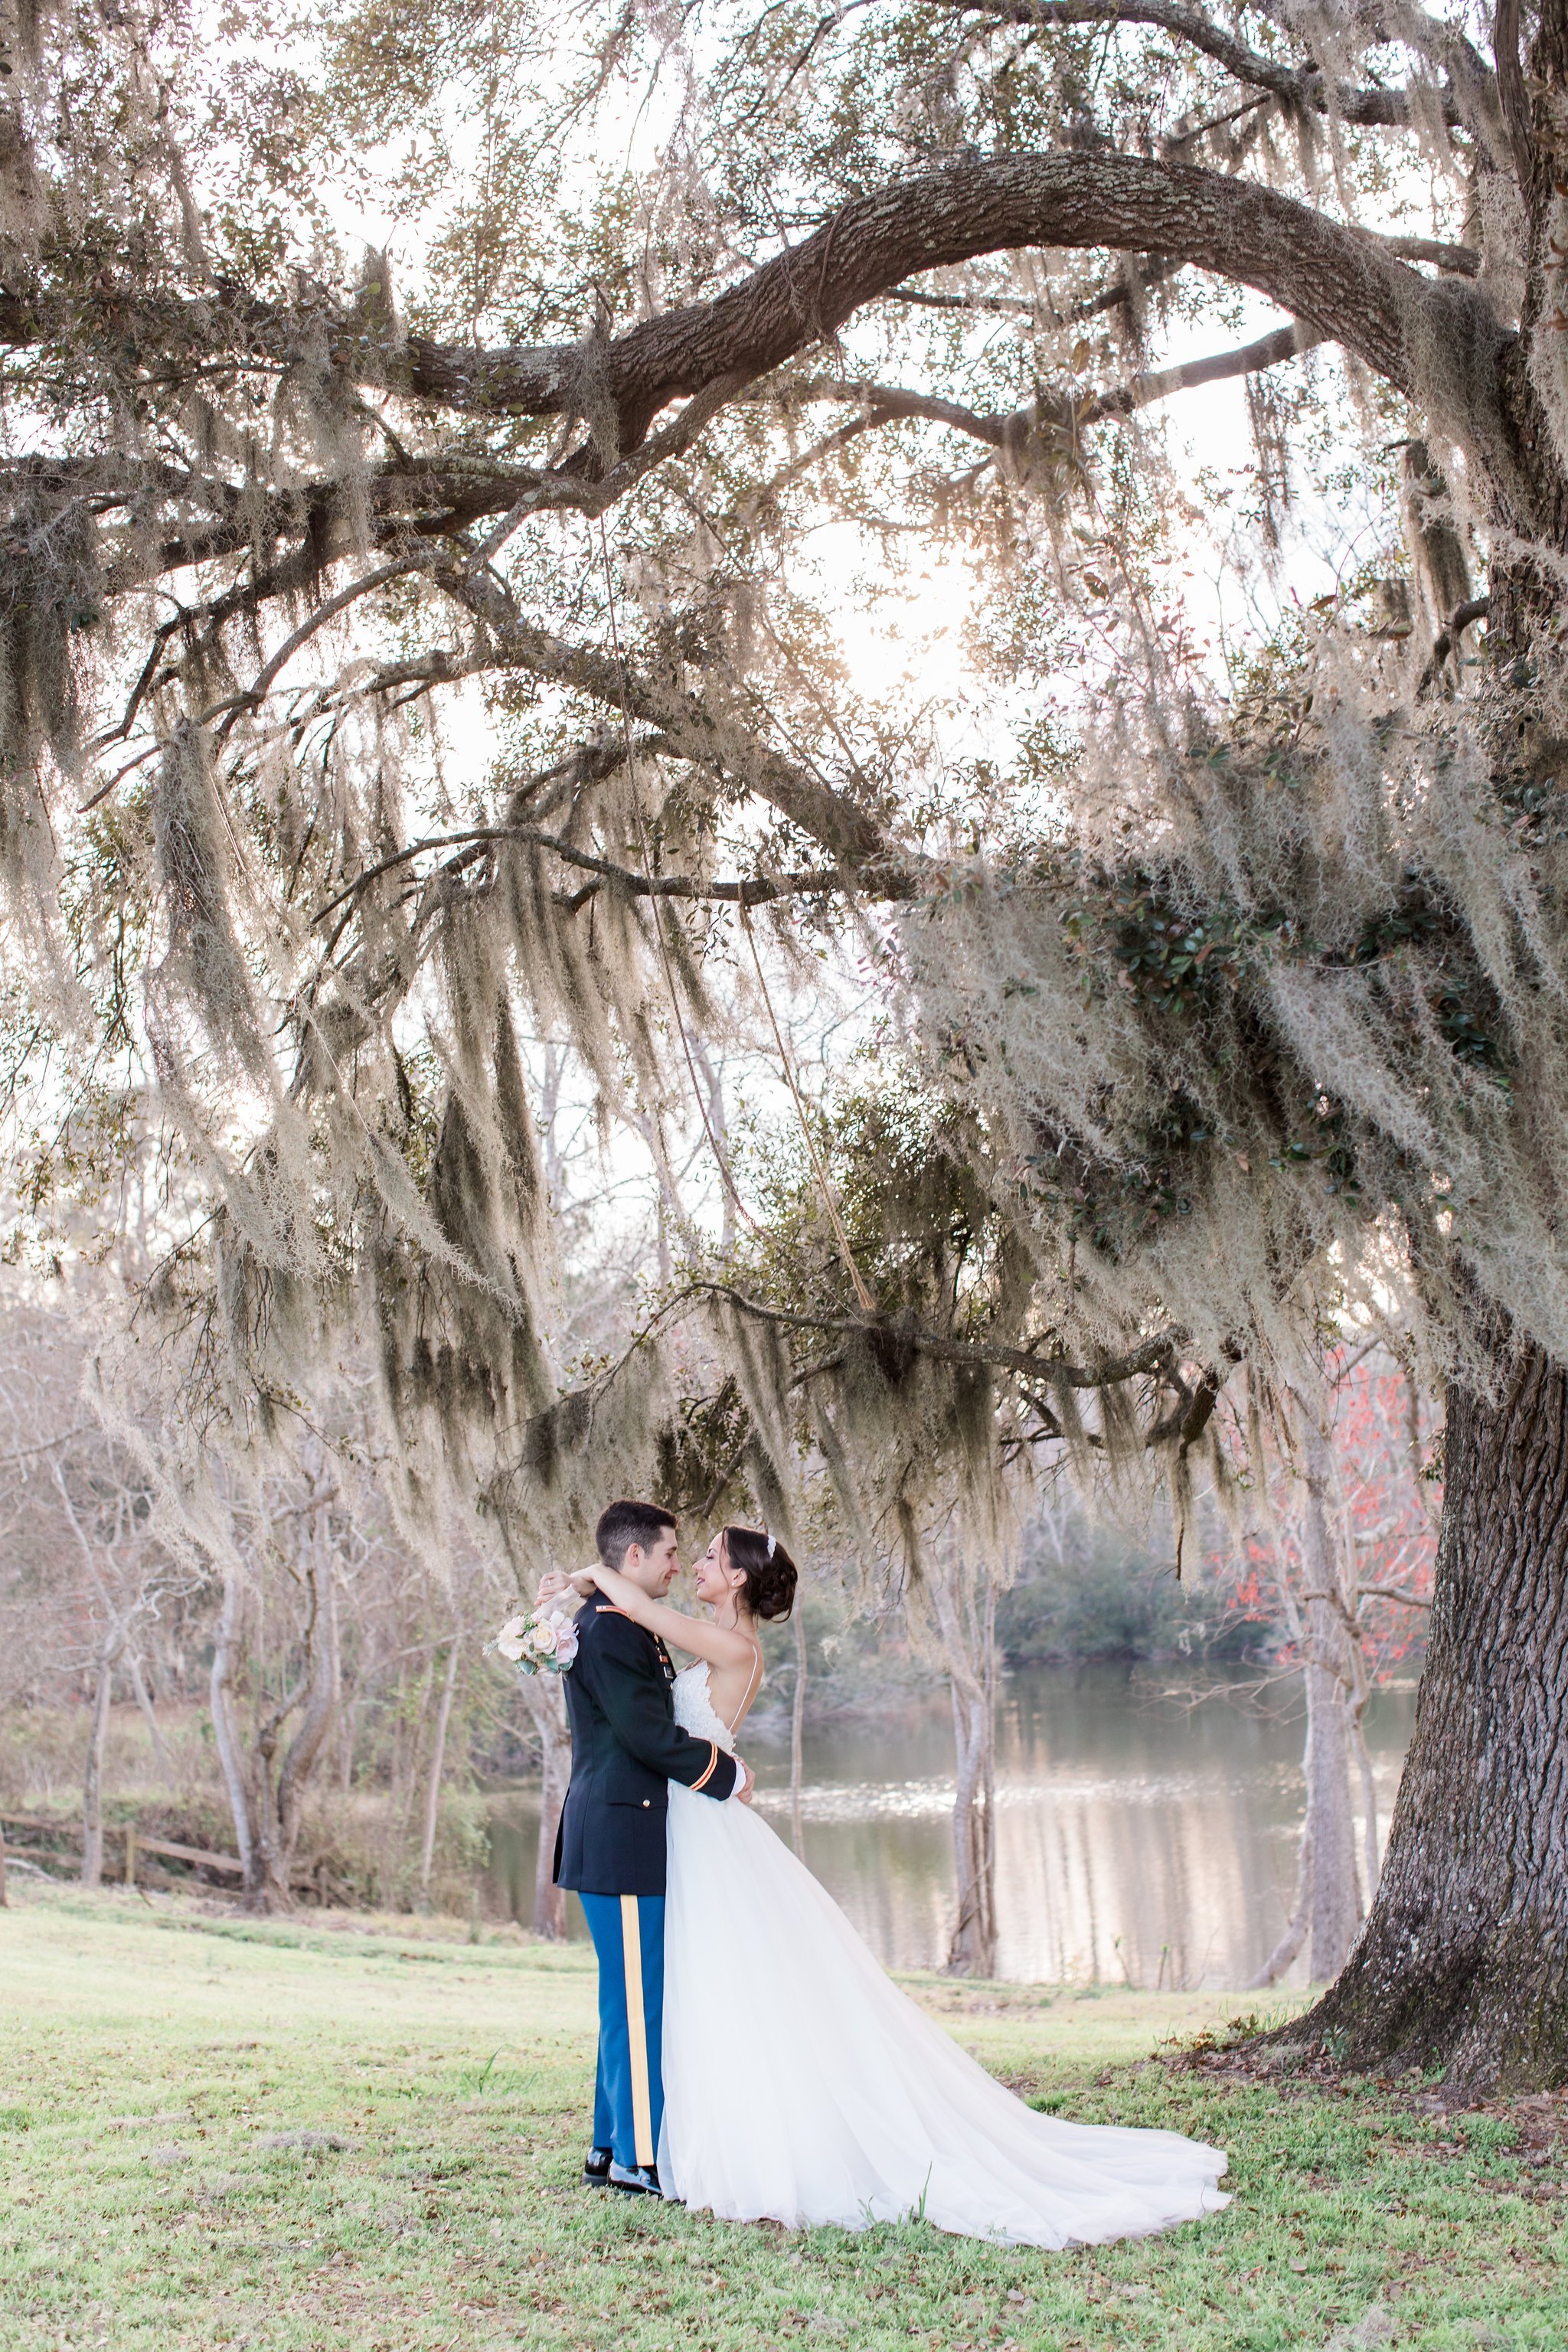 Andrea-brad-apt-b-photography-savannah-wedding-savannah-wedding-photographer-red-gate-barn-wedding-emmit-square-first-look-historic-savannah-wedding-army-wedding -15.JPG